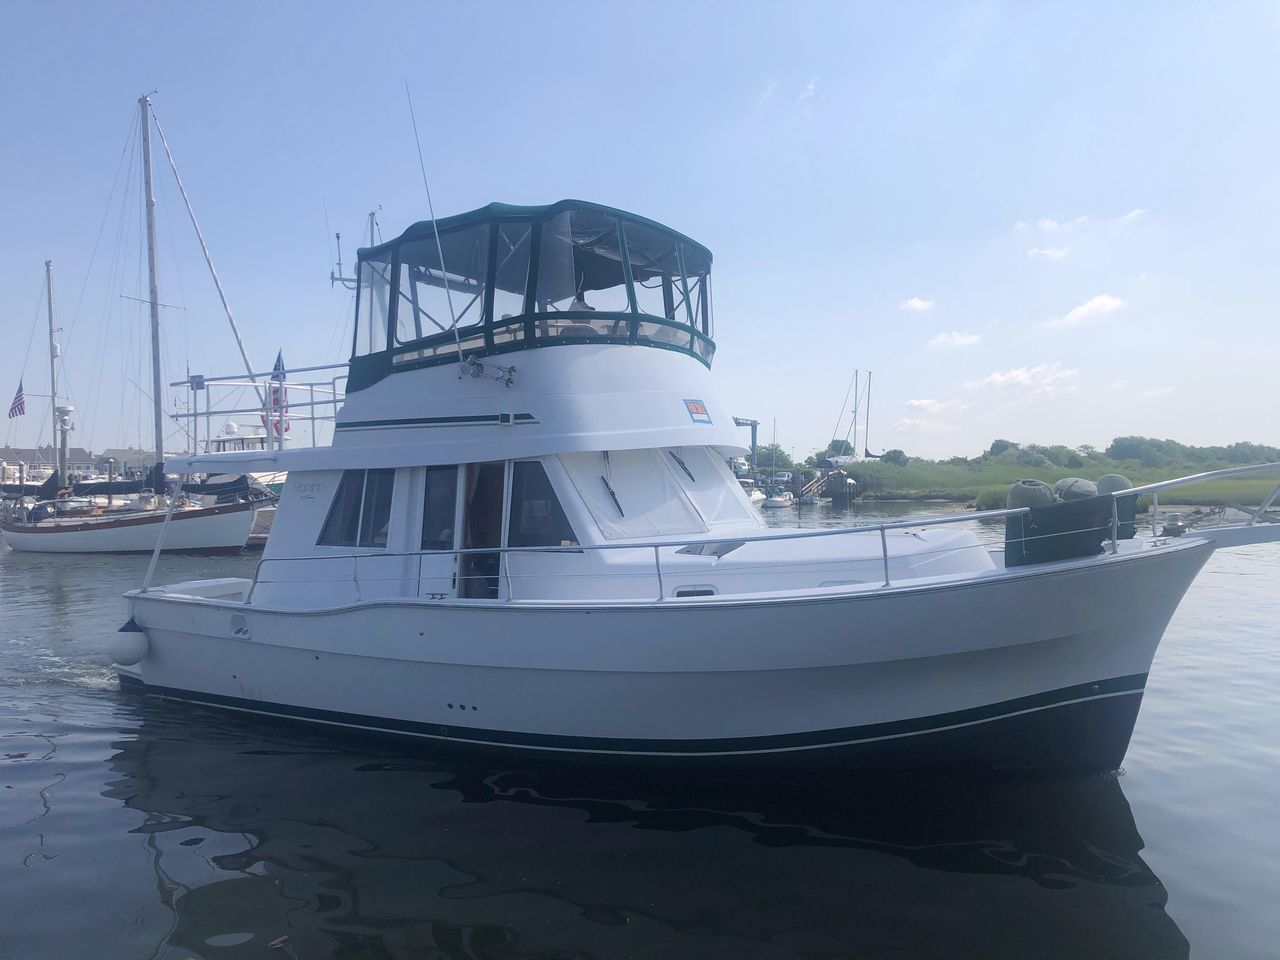 1998 Used Mainship 350 Trawler Boat For Sale - $115,000